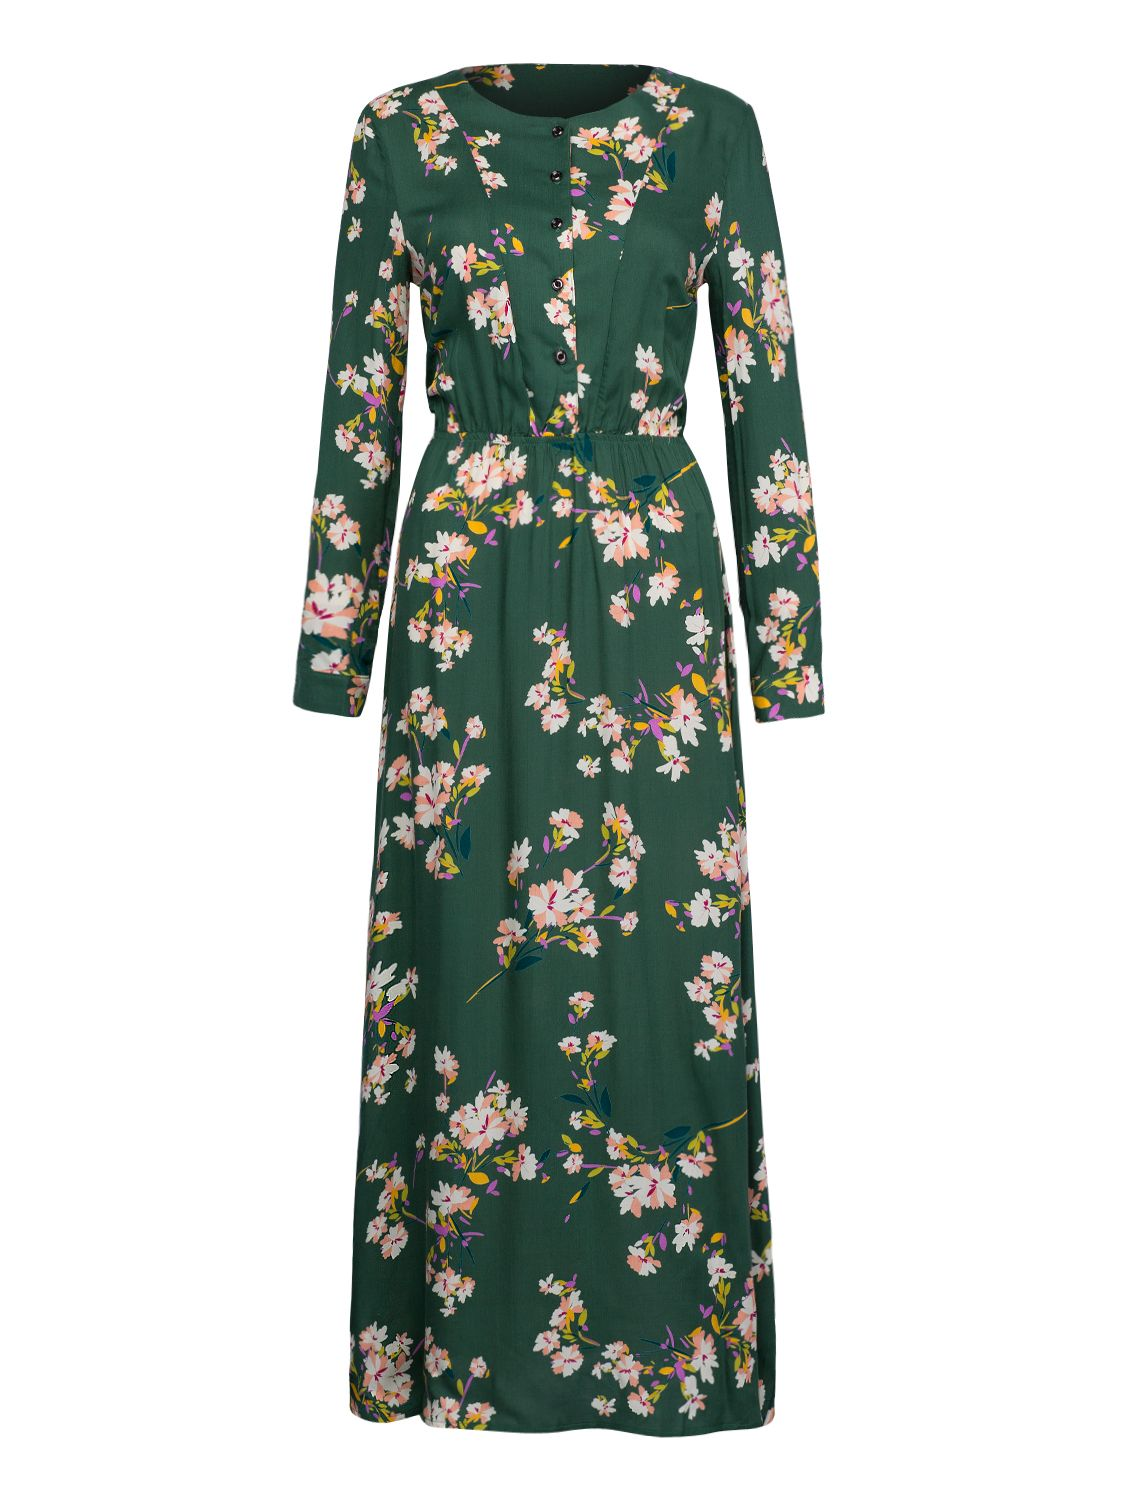 Green floral print buttoned front maxi dress maxi dresses floral